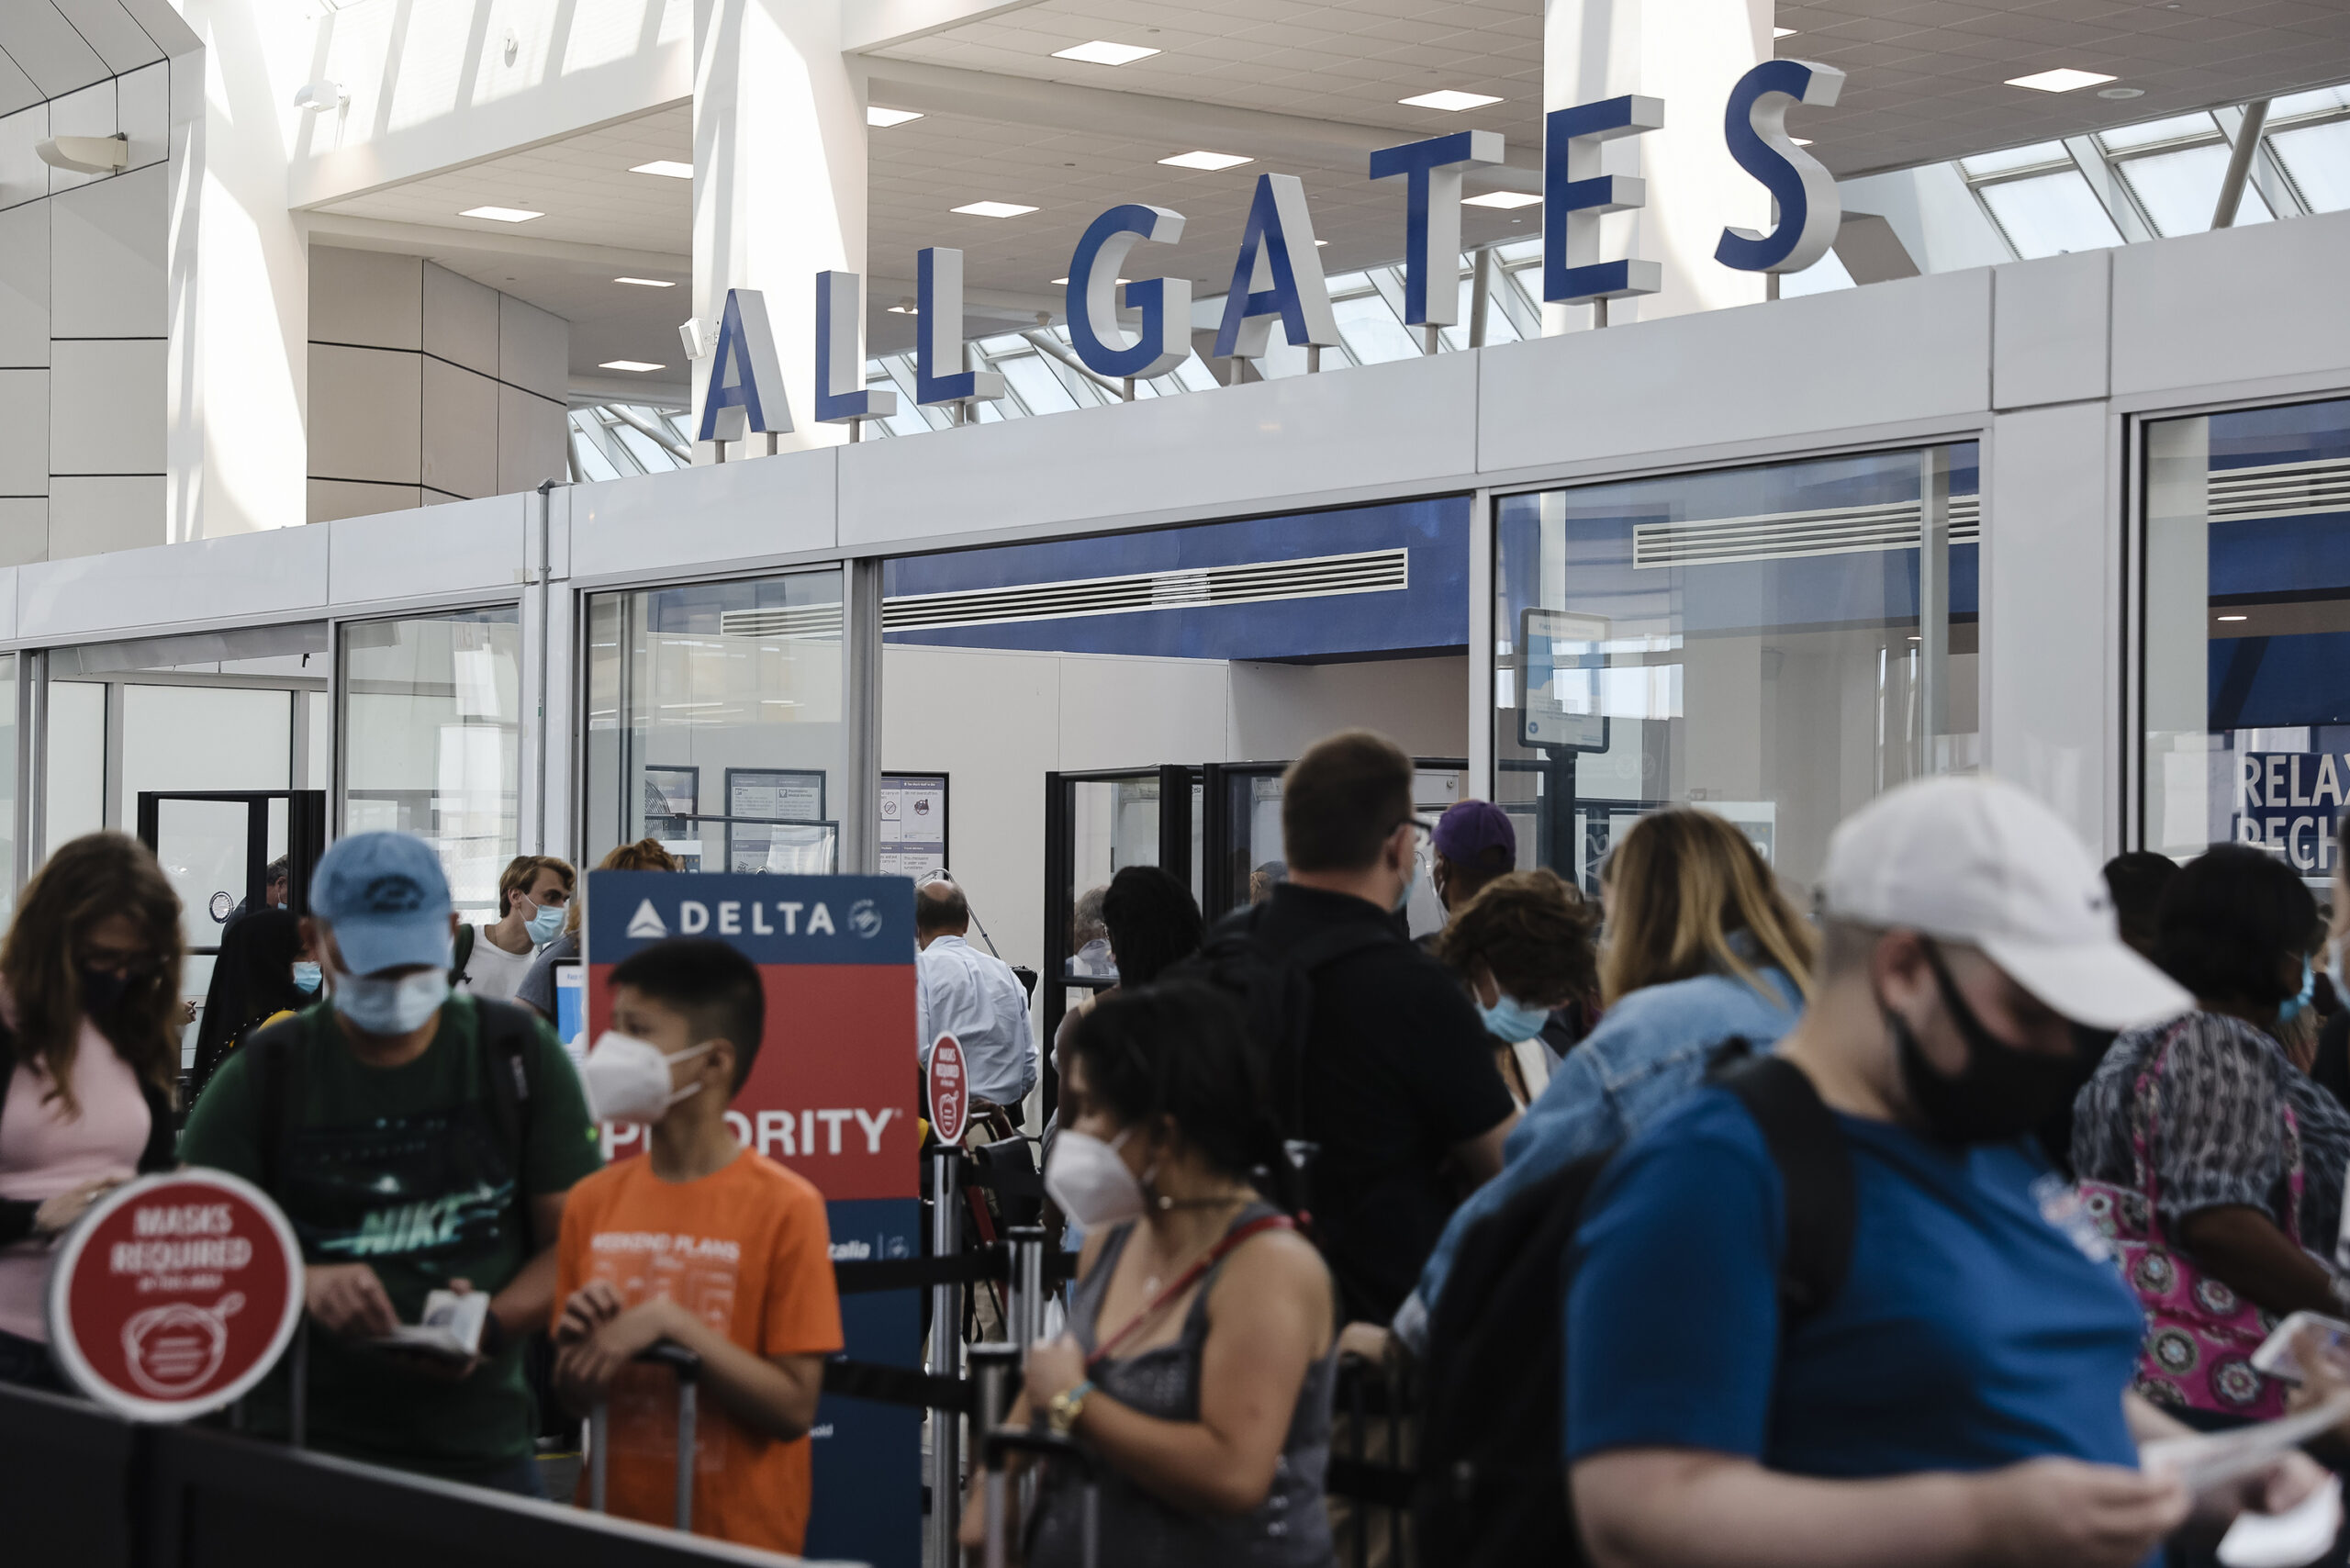 """People stand in line around a sign that says """"All Gates"""" wearing masks."""